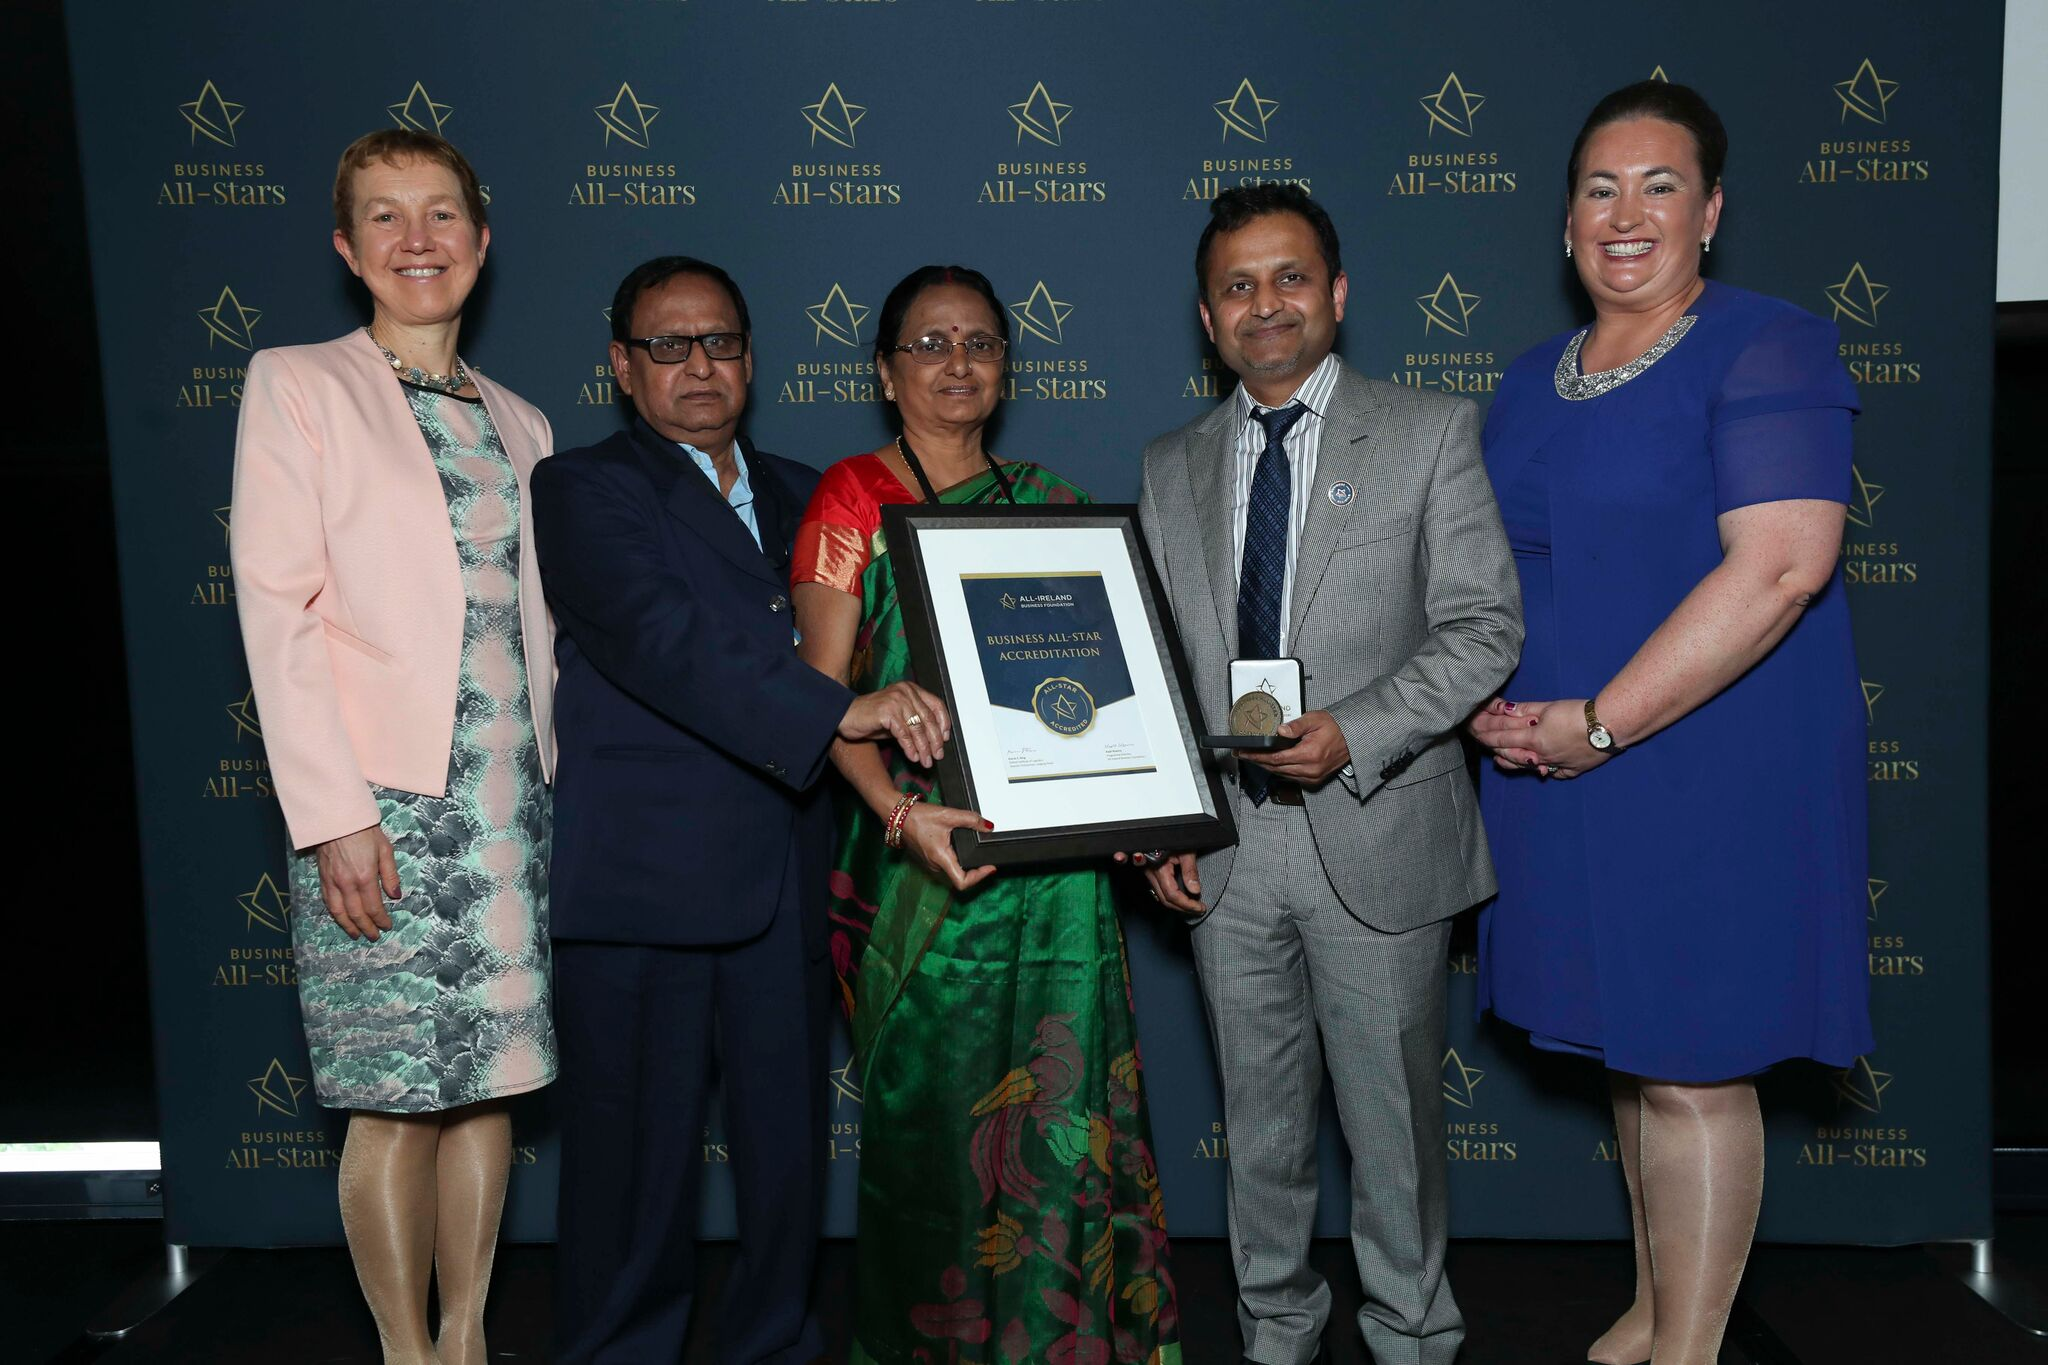 Dr Deepak Kumar & his parents - The Audiology Clinic representing receiving Business All-Star Accreditation at Croke Park from Dr Briga Hynes, Kemmy Business School, University of Limerick and Elaine Carroll CEO, All-Ireland Business Foundation.